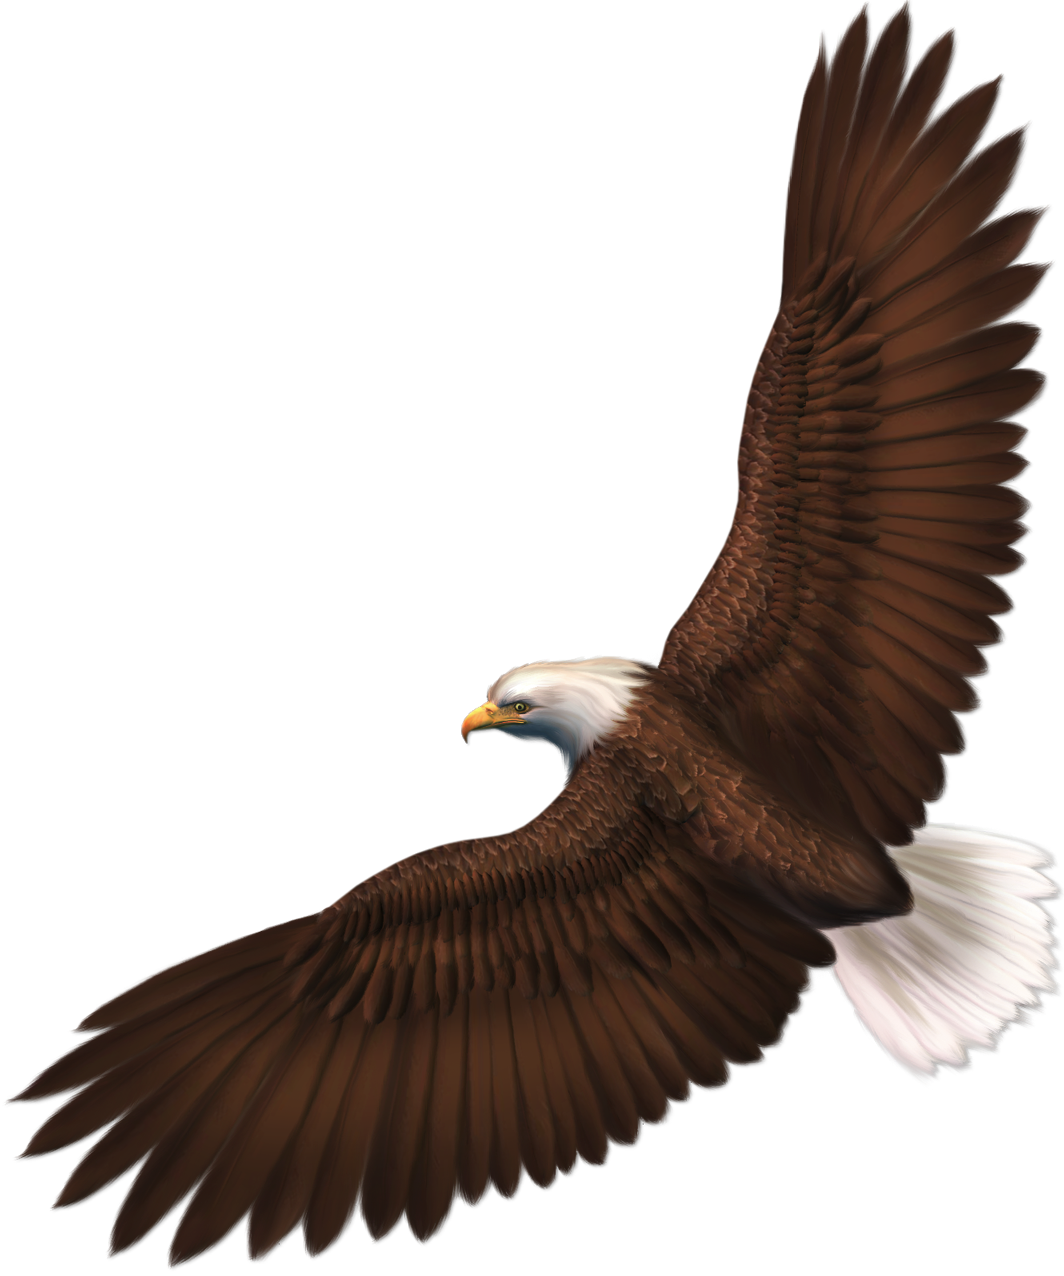 image transparent stock Gallery clipart eagel. Transparent eagle png picture.